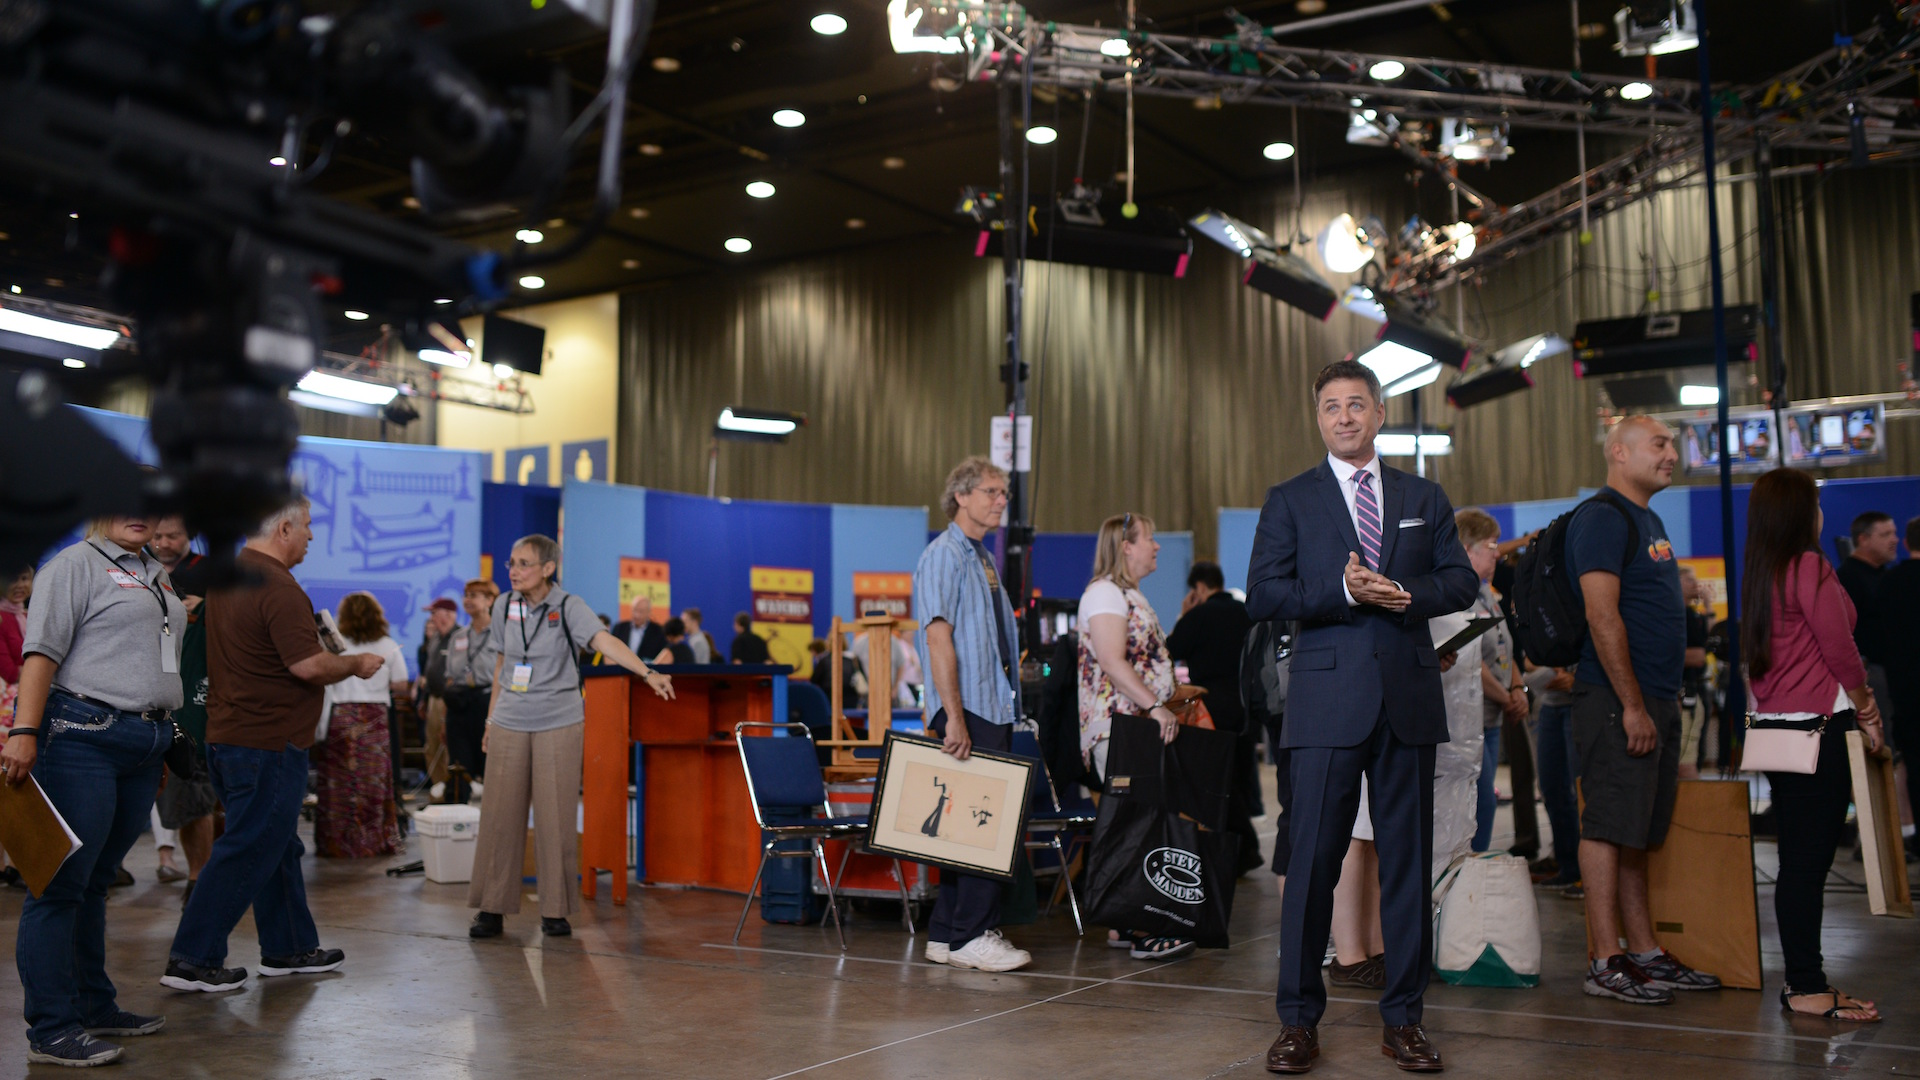 http://www-tc.pbs.org/prod-media/antiques-roadshow/article/images/Mark-on-old-set_1920x1080.jpg